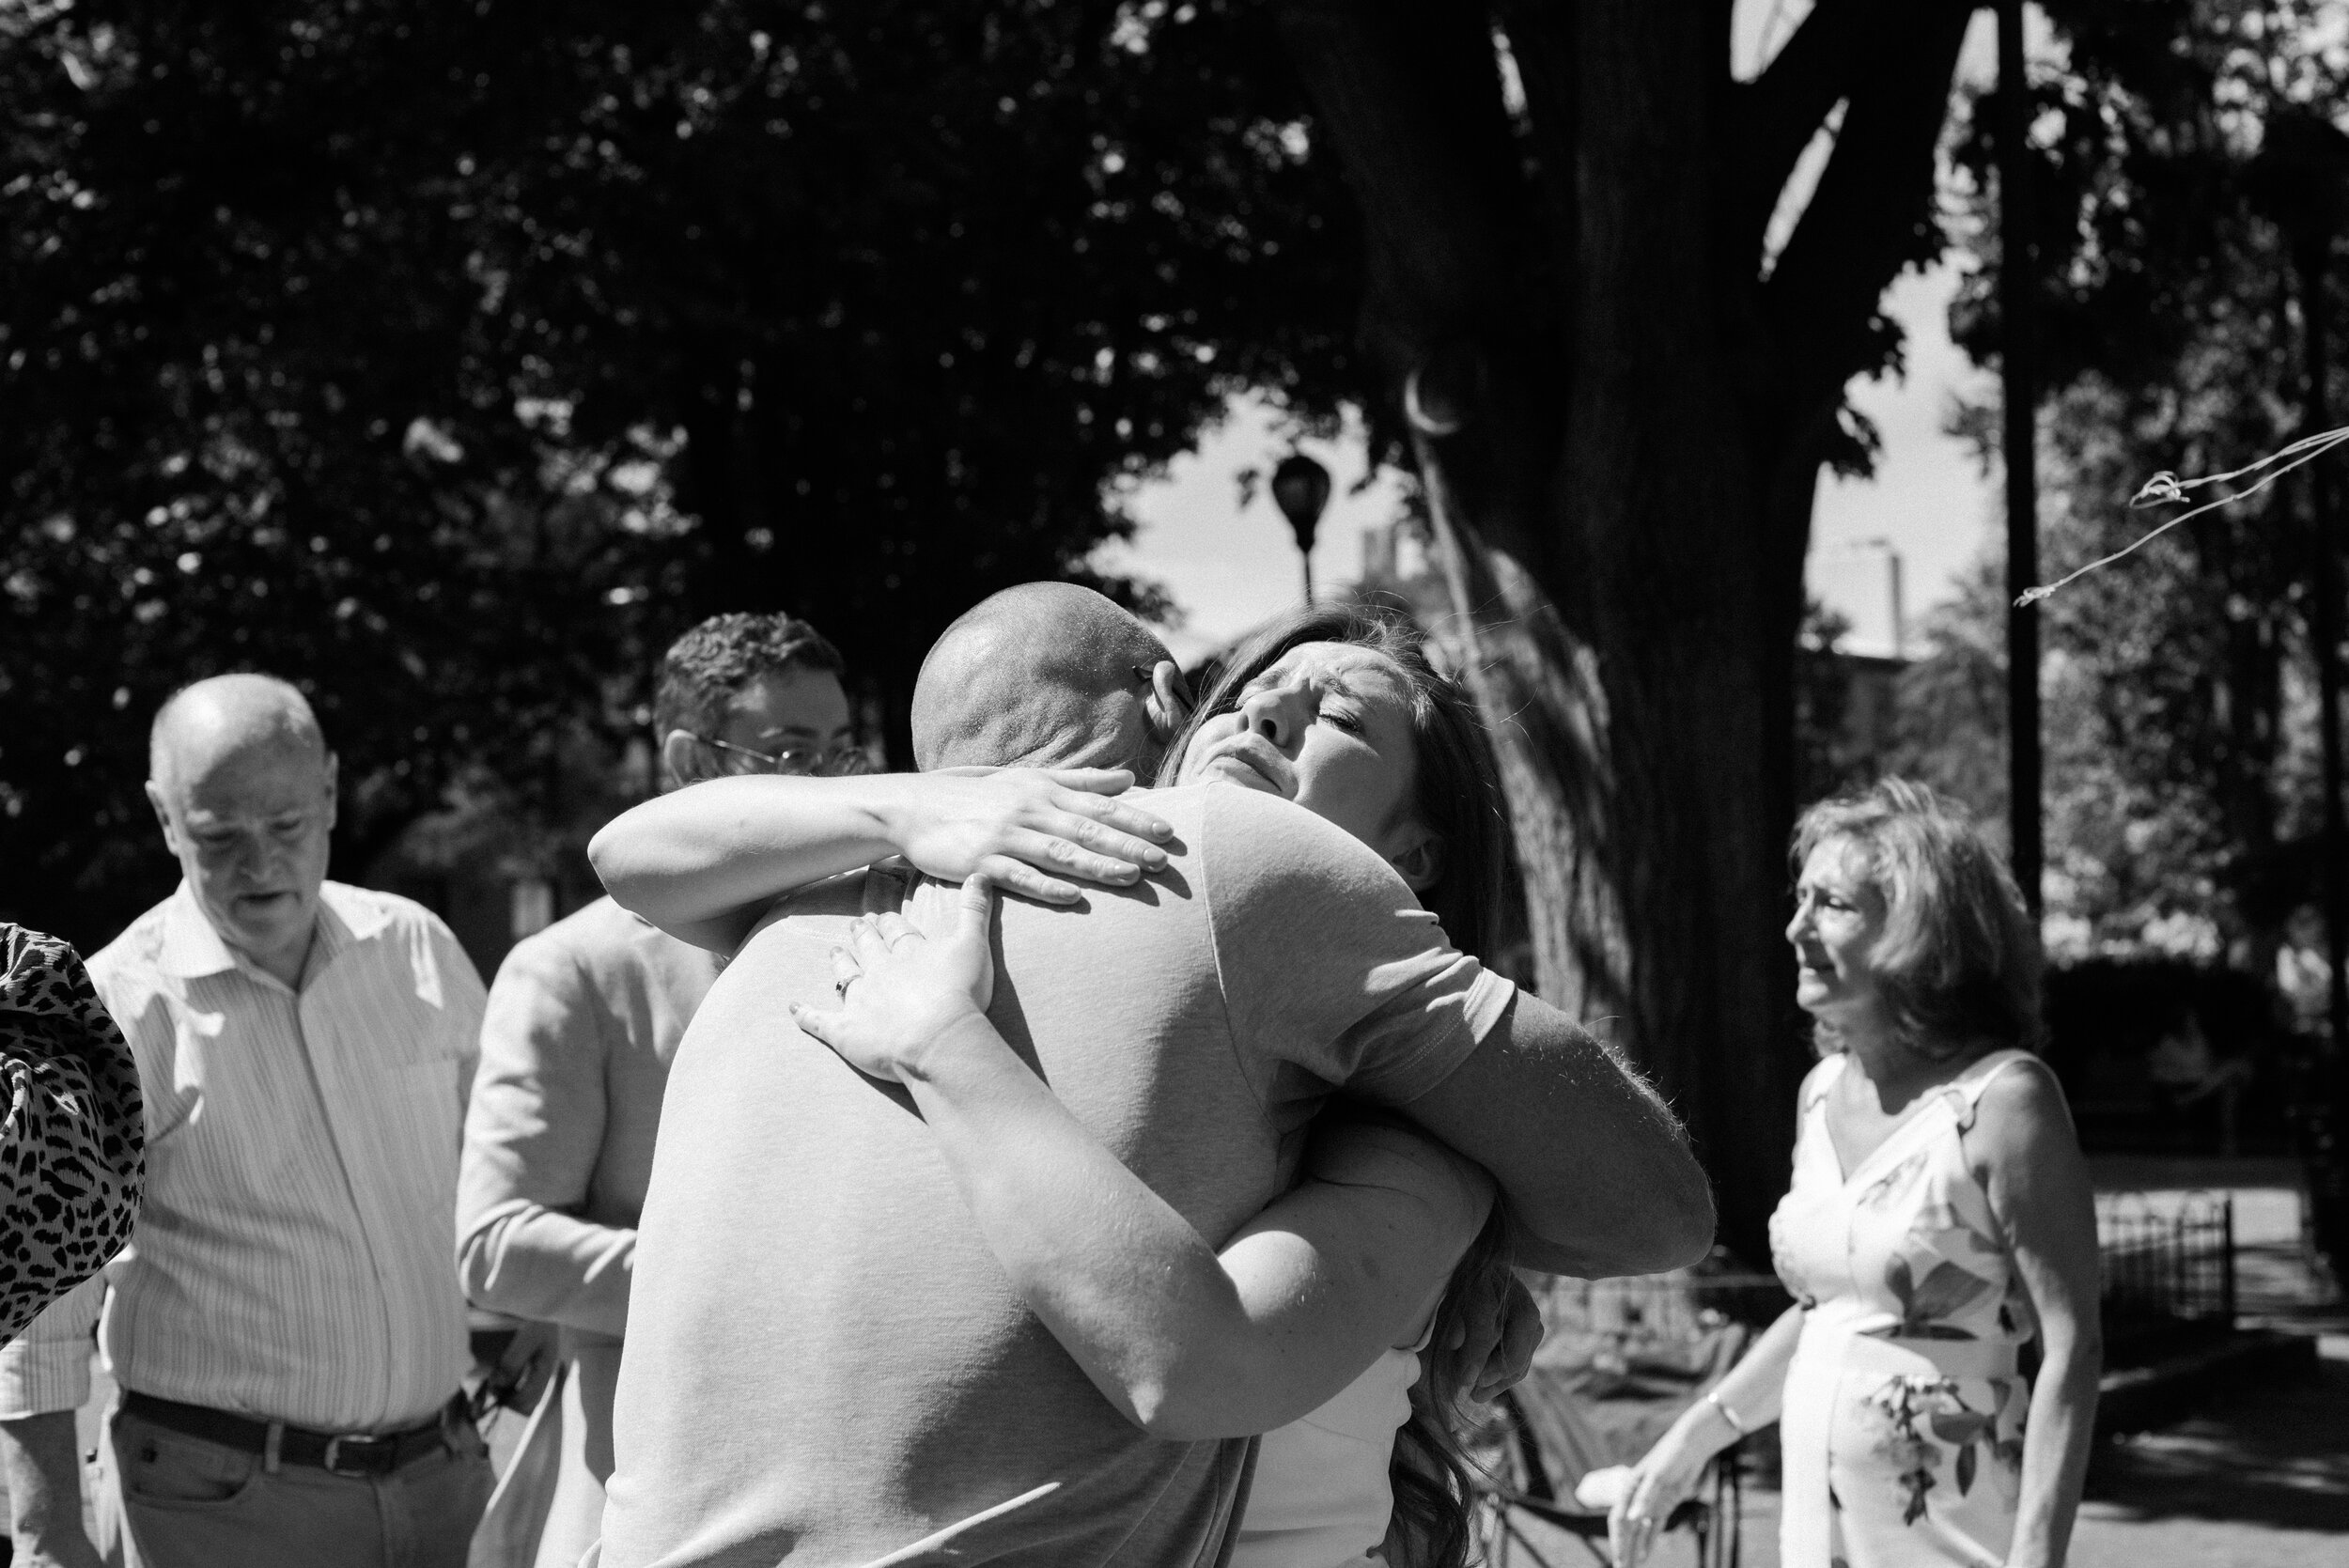 Father and daughter embracing after the ceremony.